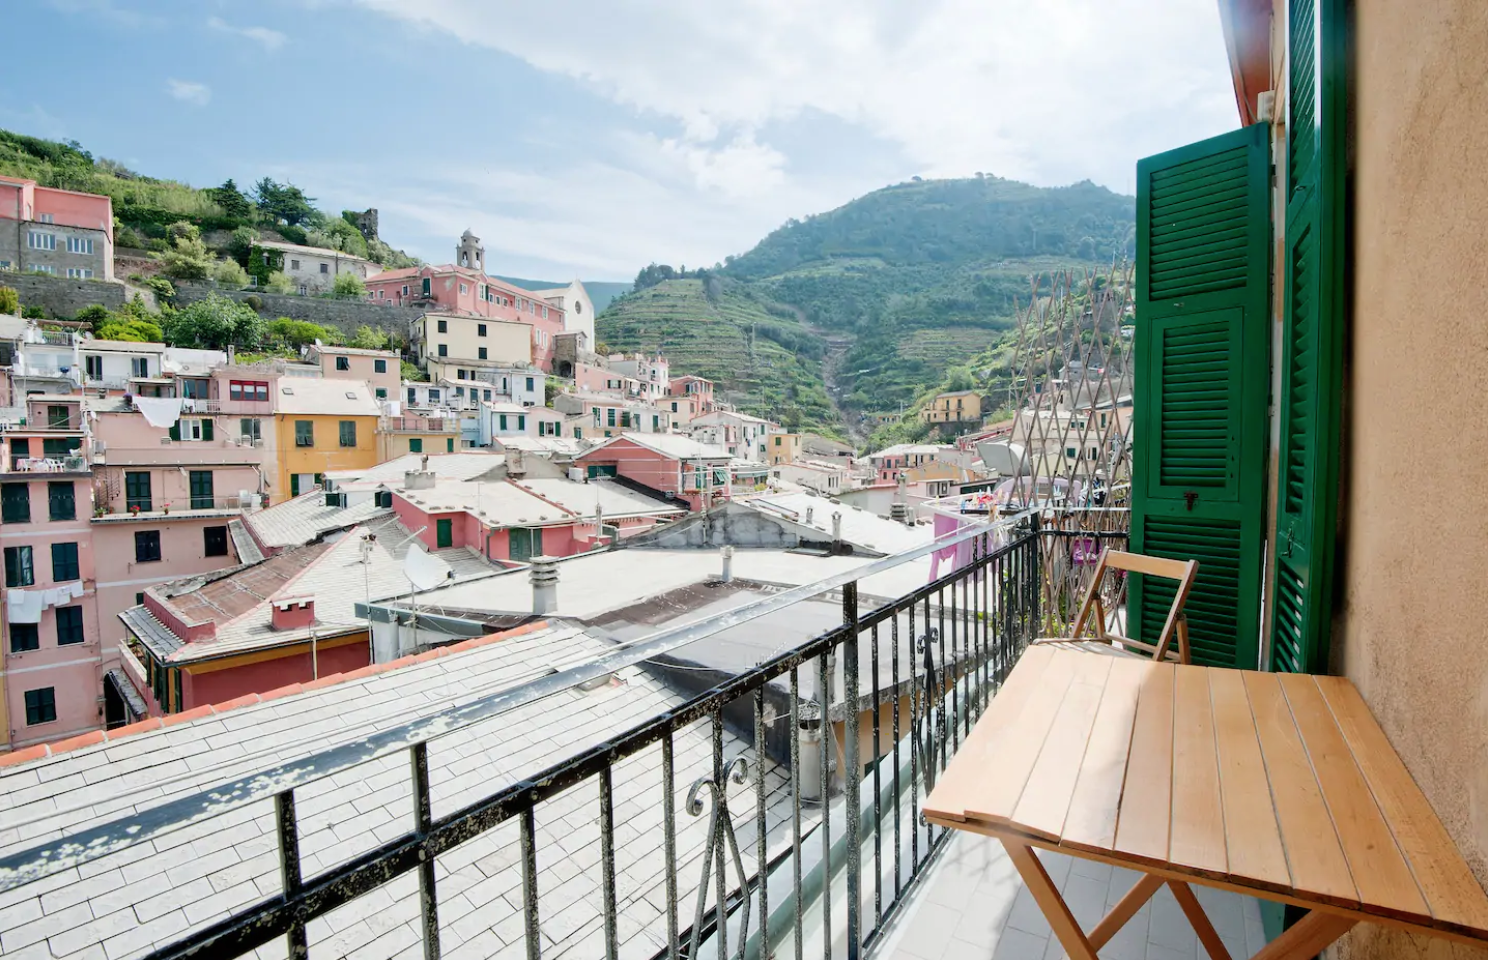 this airbnb comes with sea views, views of the town, and a balcony